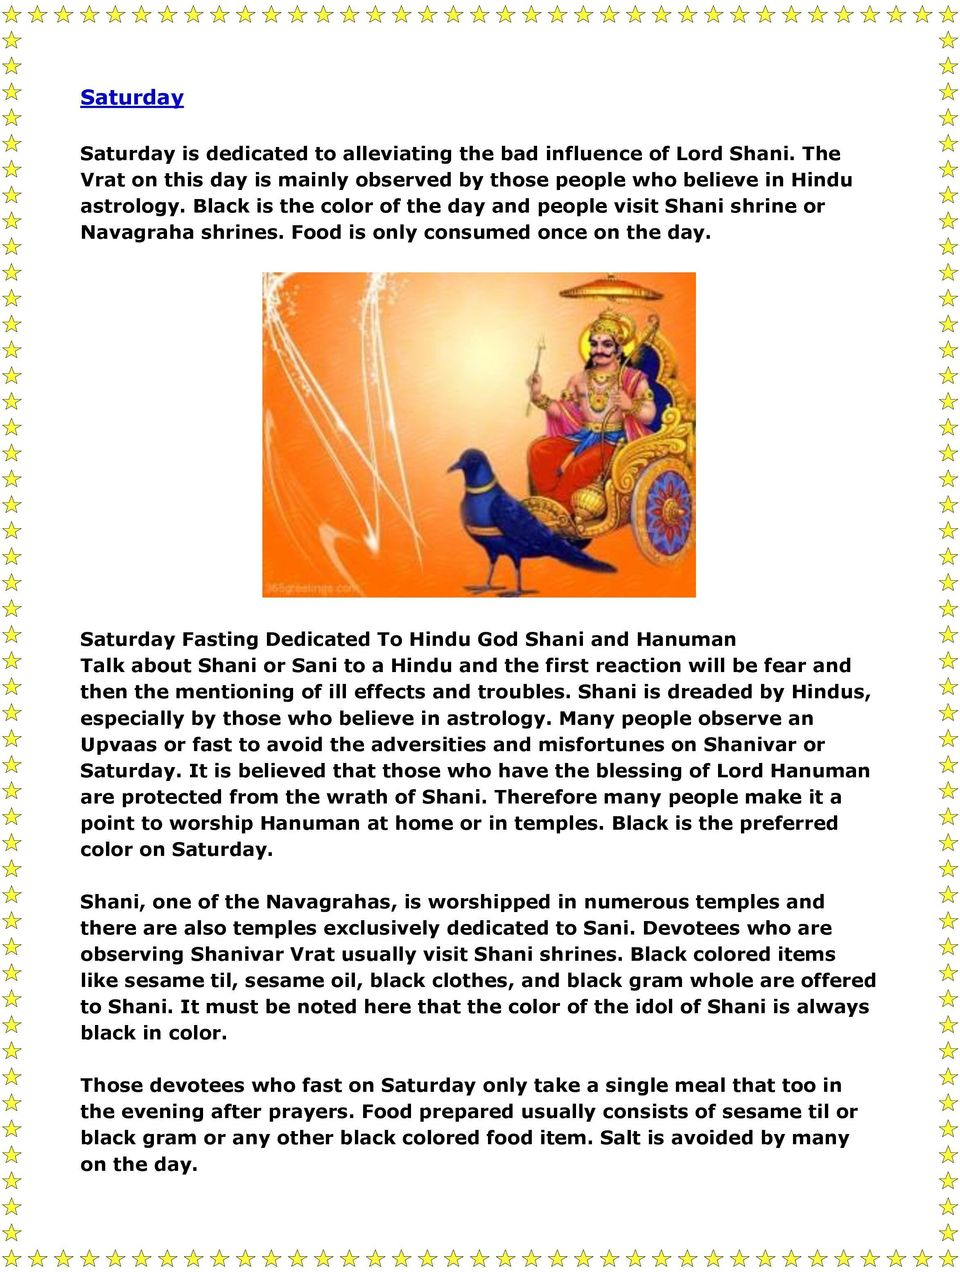 Saturday Fasting Dedicated To Hindu God Shani and Hanuman Talk about Shani or Sani to a Hindu and the first reaction will be fear and then the mentioning of ill effects and troubles.